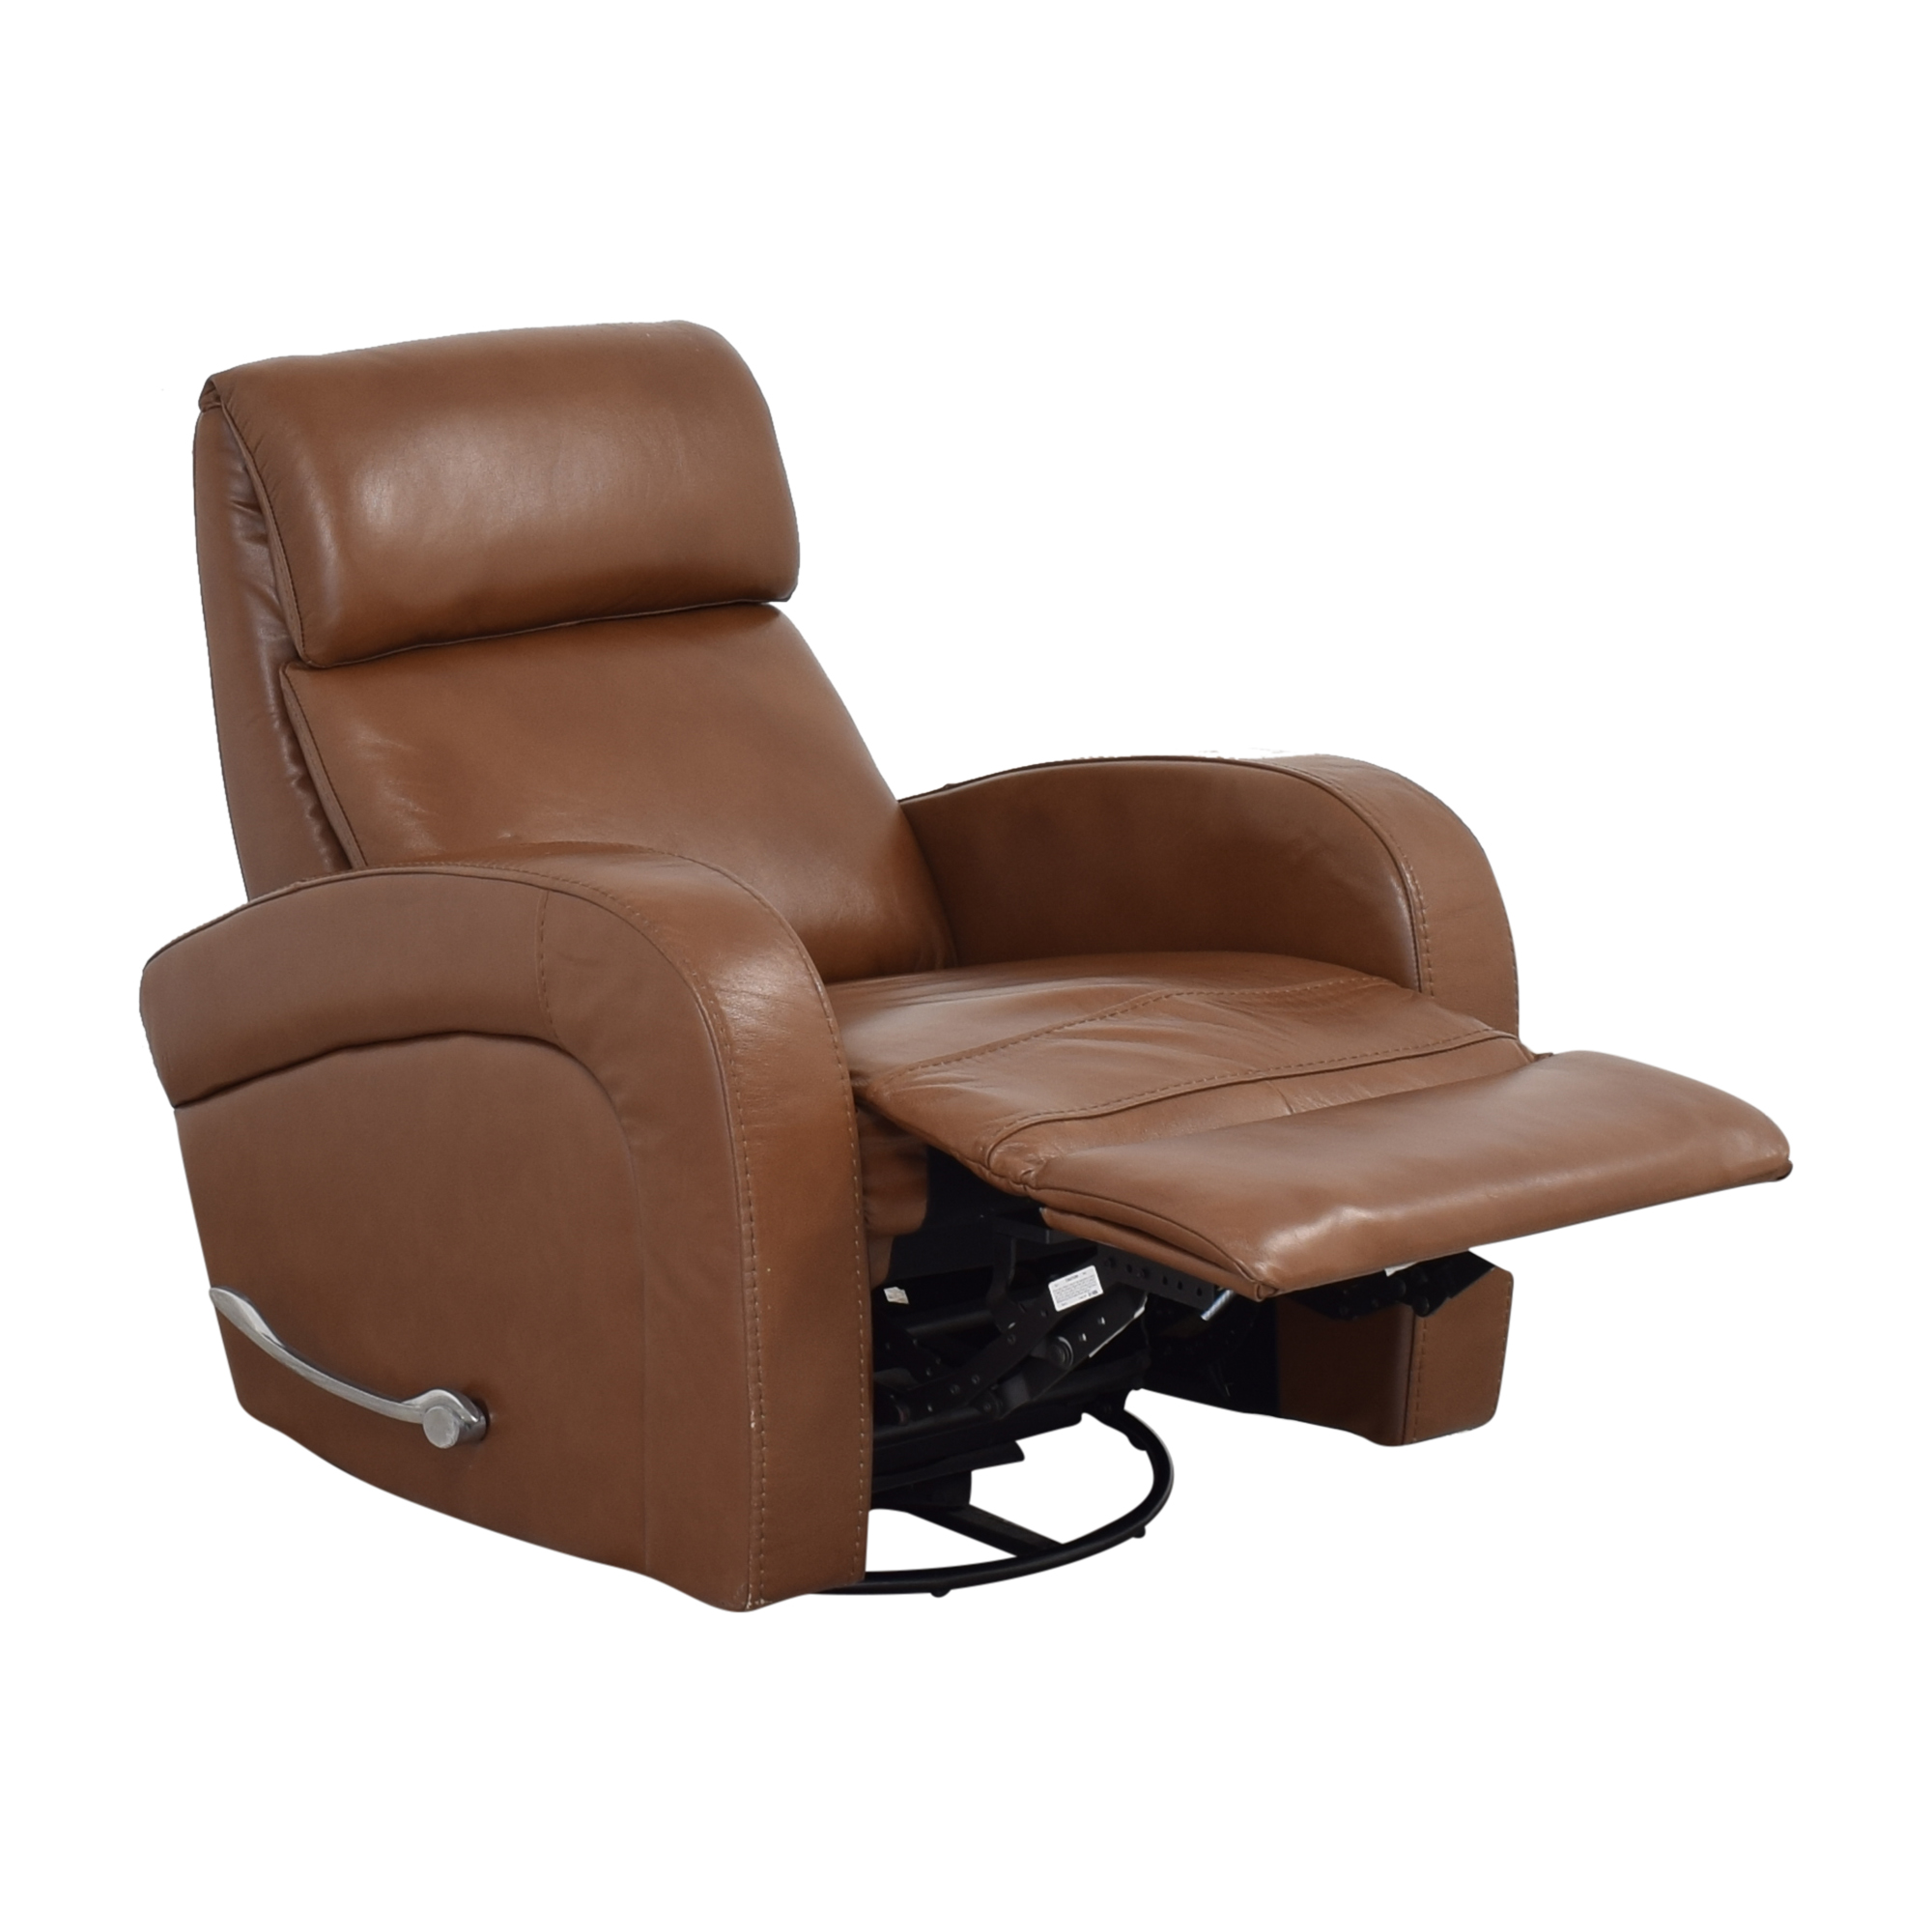 Macy's Manual Swivel Glider Recliner nj